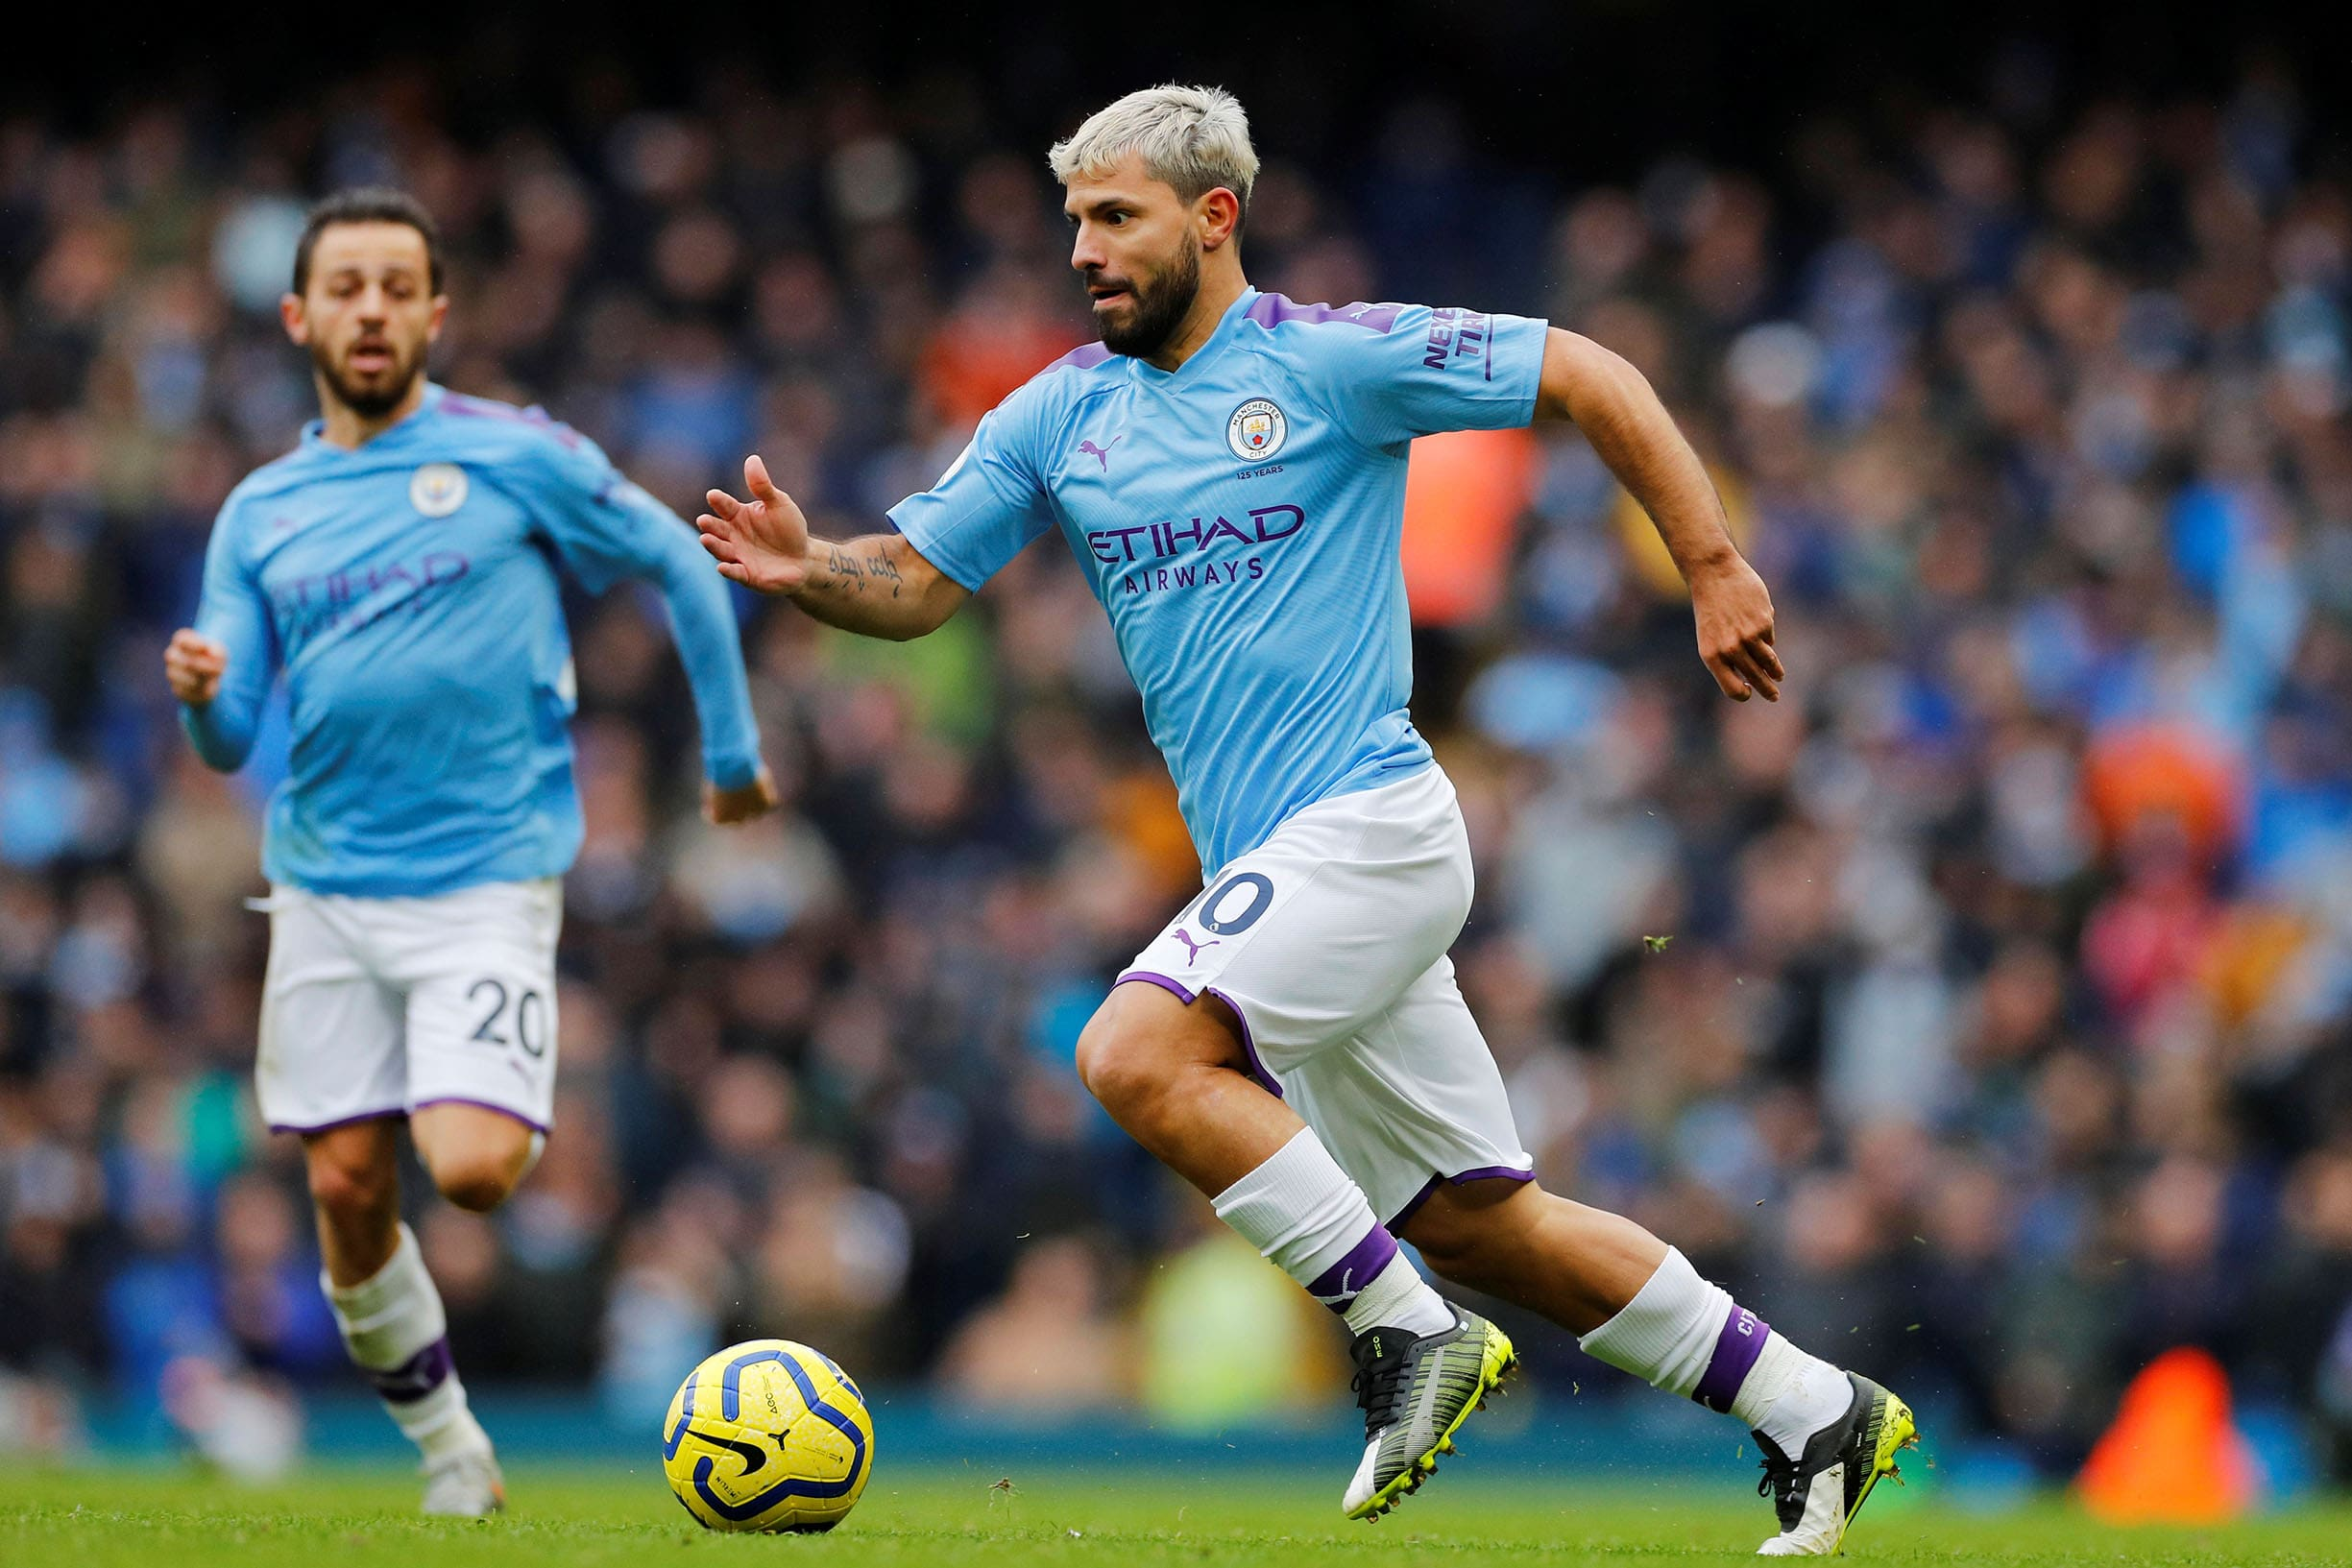 Aston Villa vs Manchester City Free Betting Tips